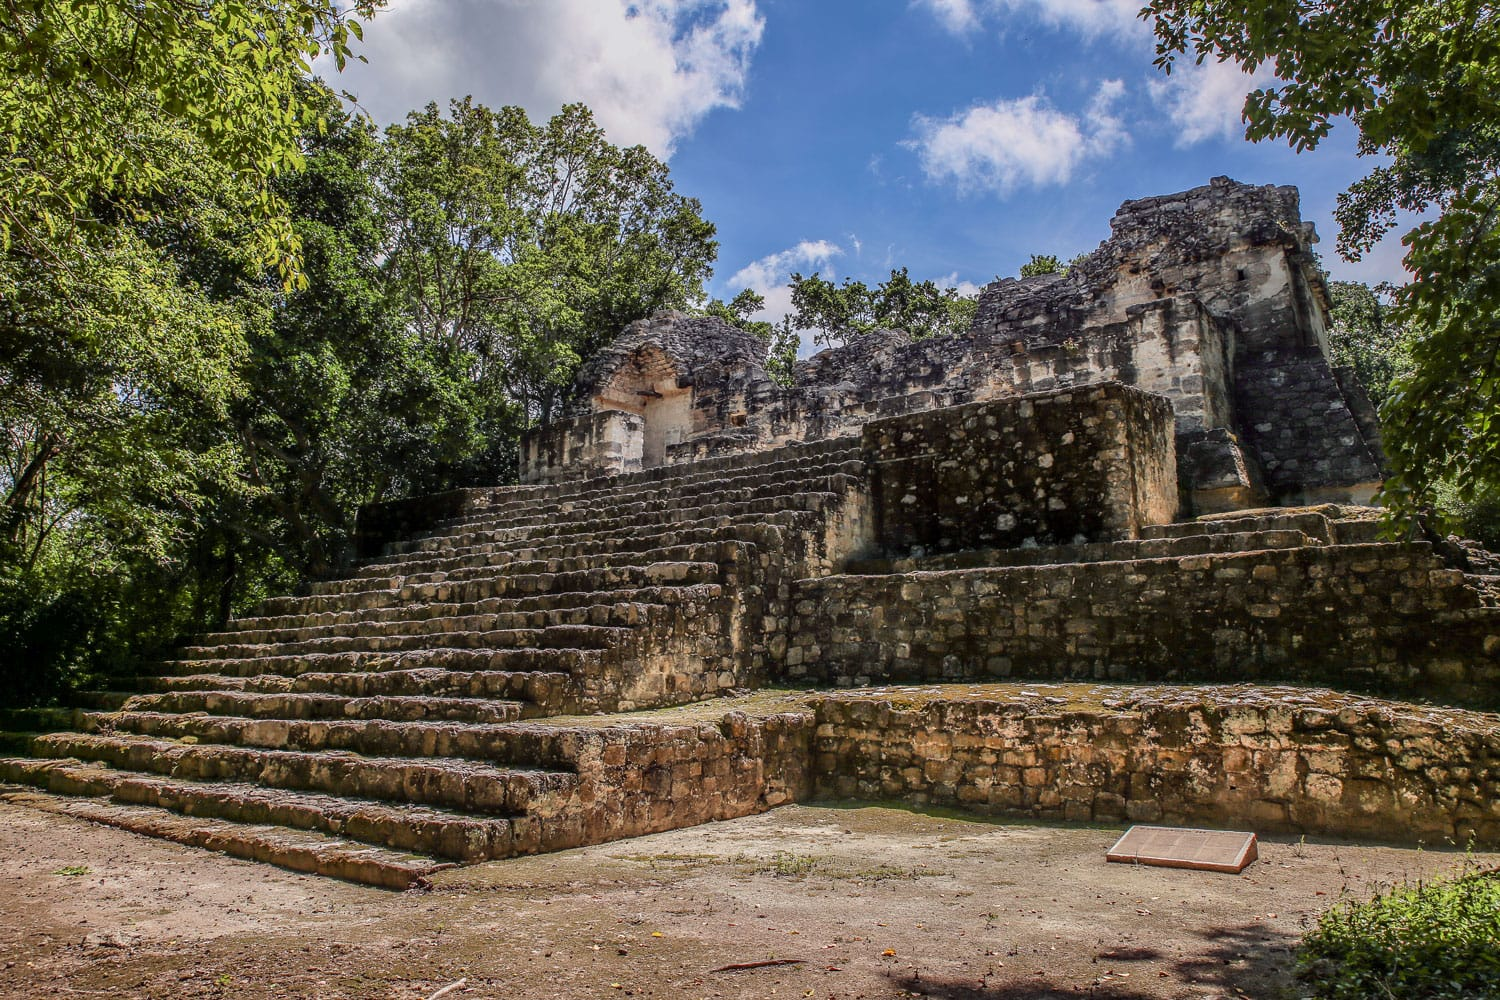 Calakmul Ruins in Mexico